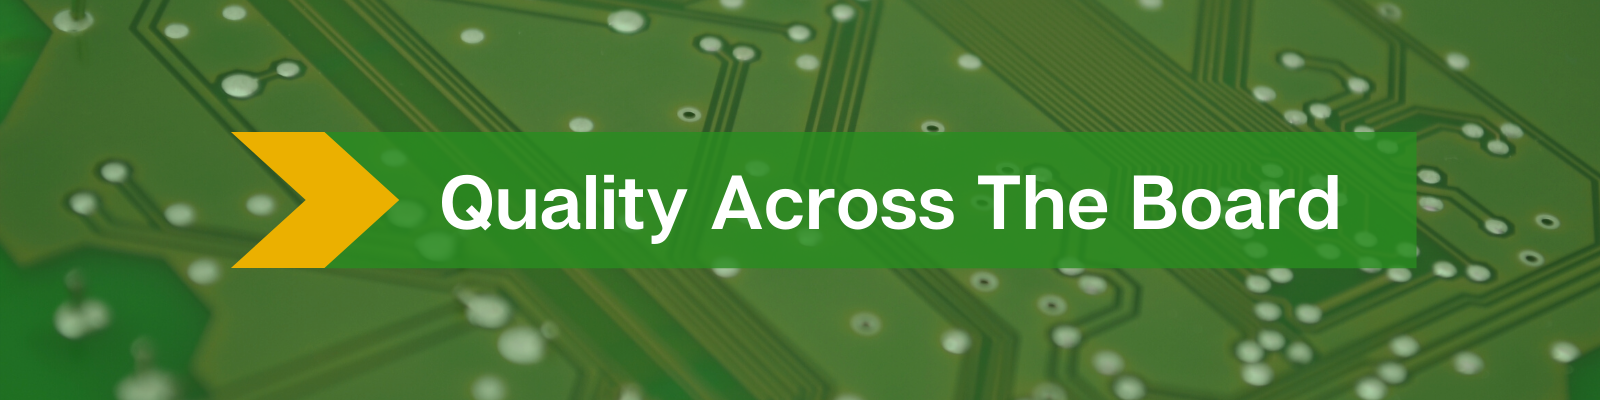 Quality Across The Board - Printed Circuit Board Solutions